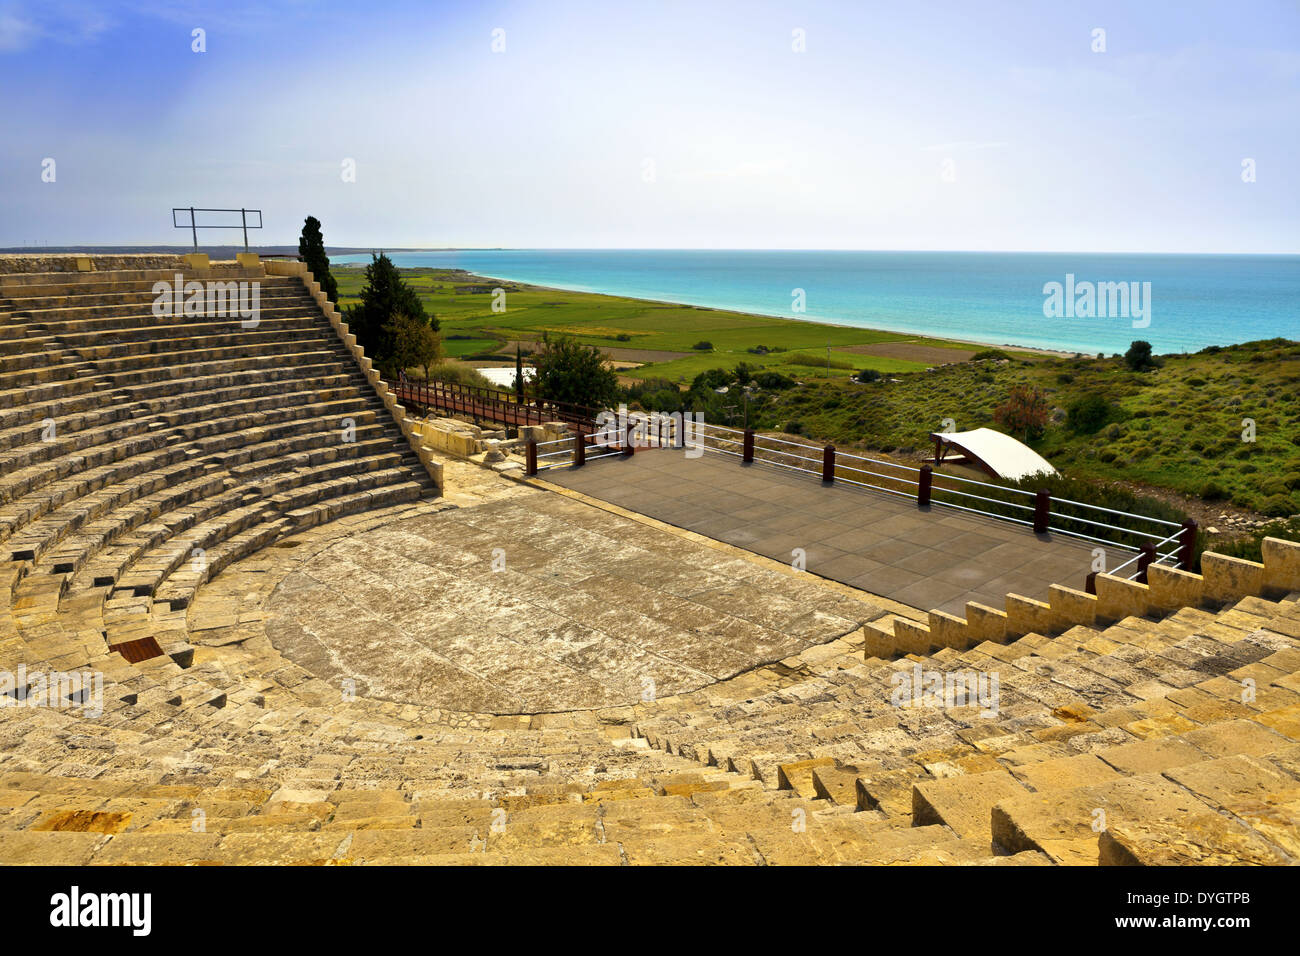 Historic Roman theatre of Kourion on the island of Cyprus. - Stock Image